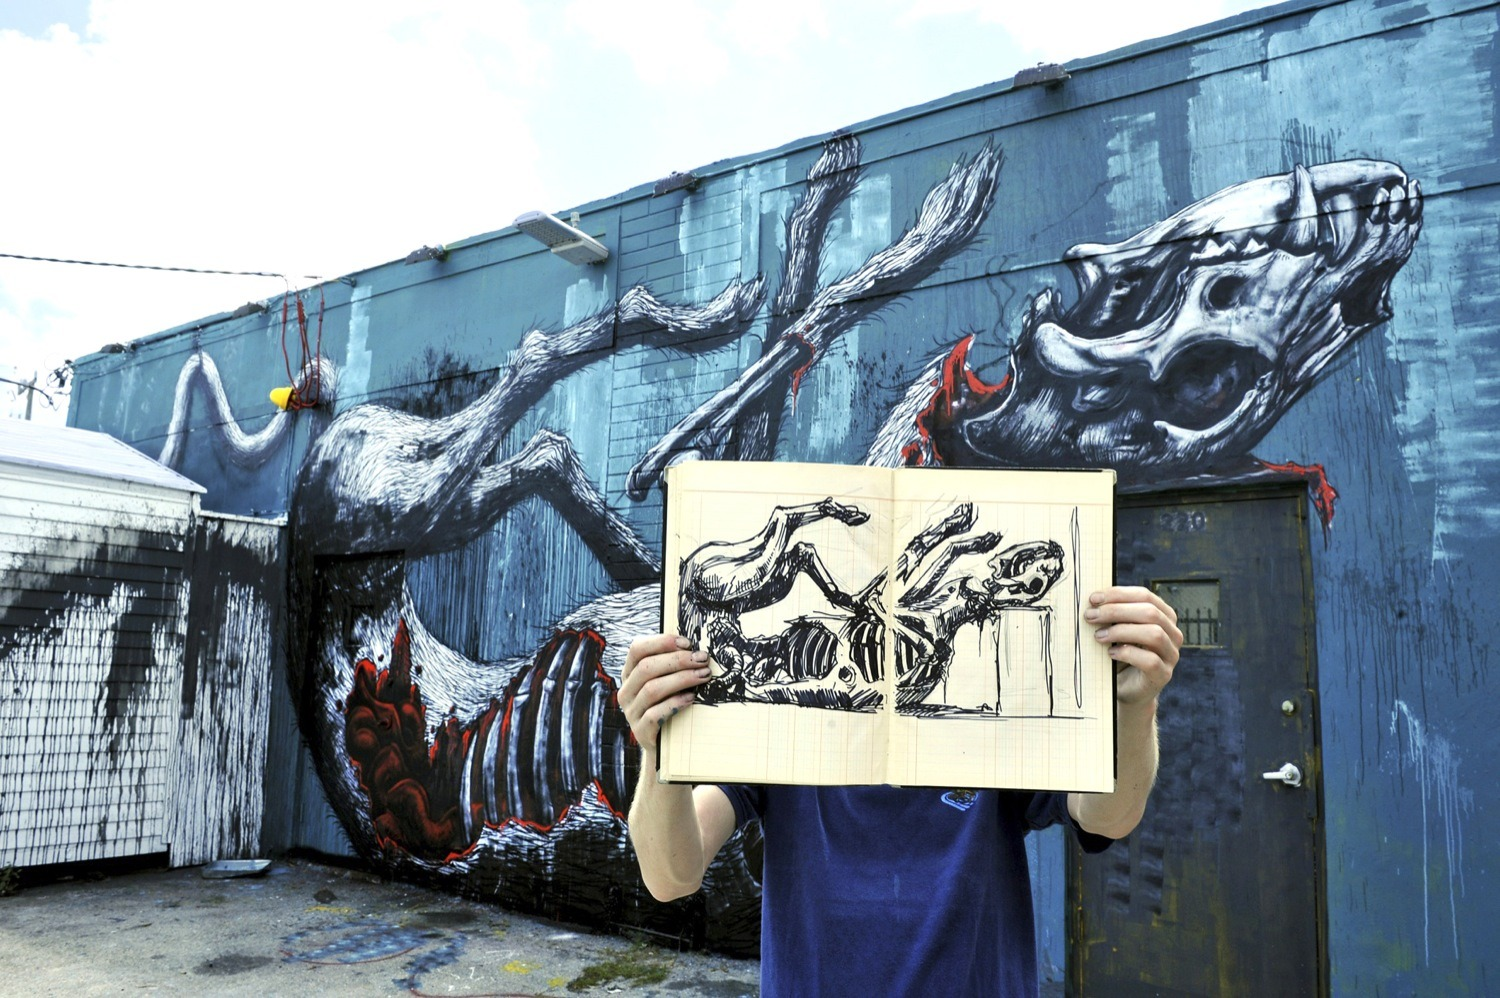 Wynwood-Box-Wynwood Walls-Roa, Wynwood Walls, Miami 2011 image courtesy of the artist and Wynwood Walls, photo credit Martha Cooper (3)